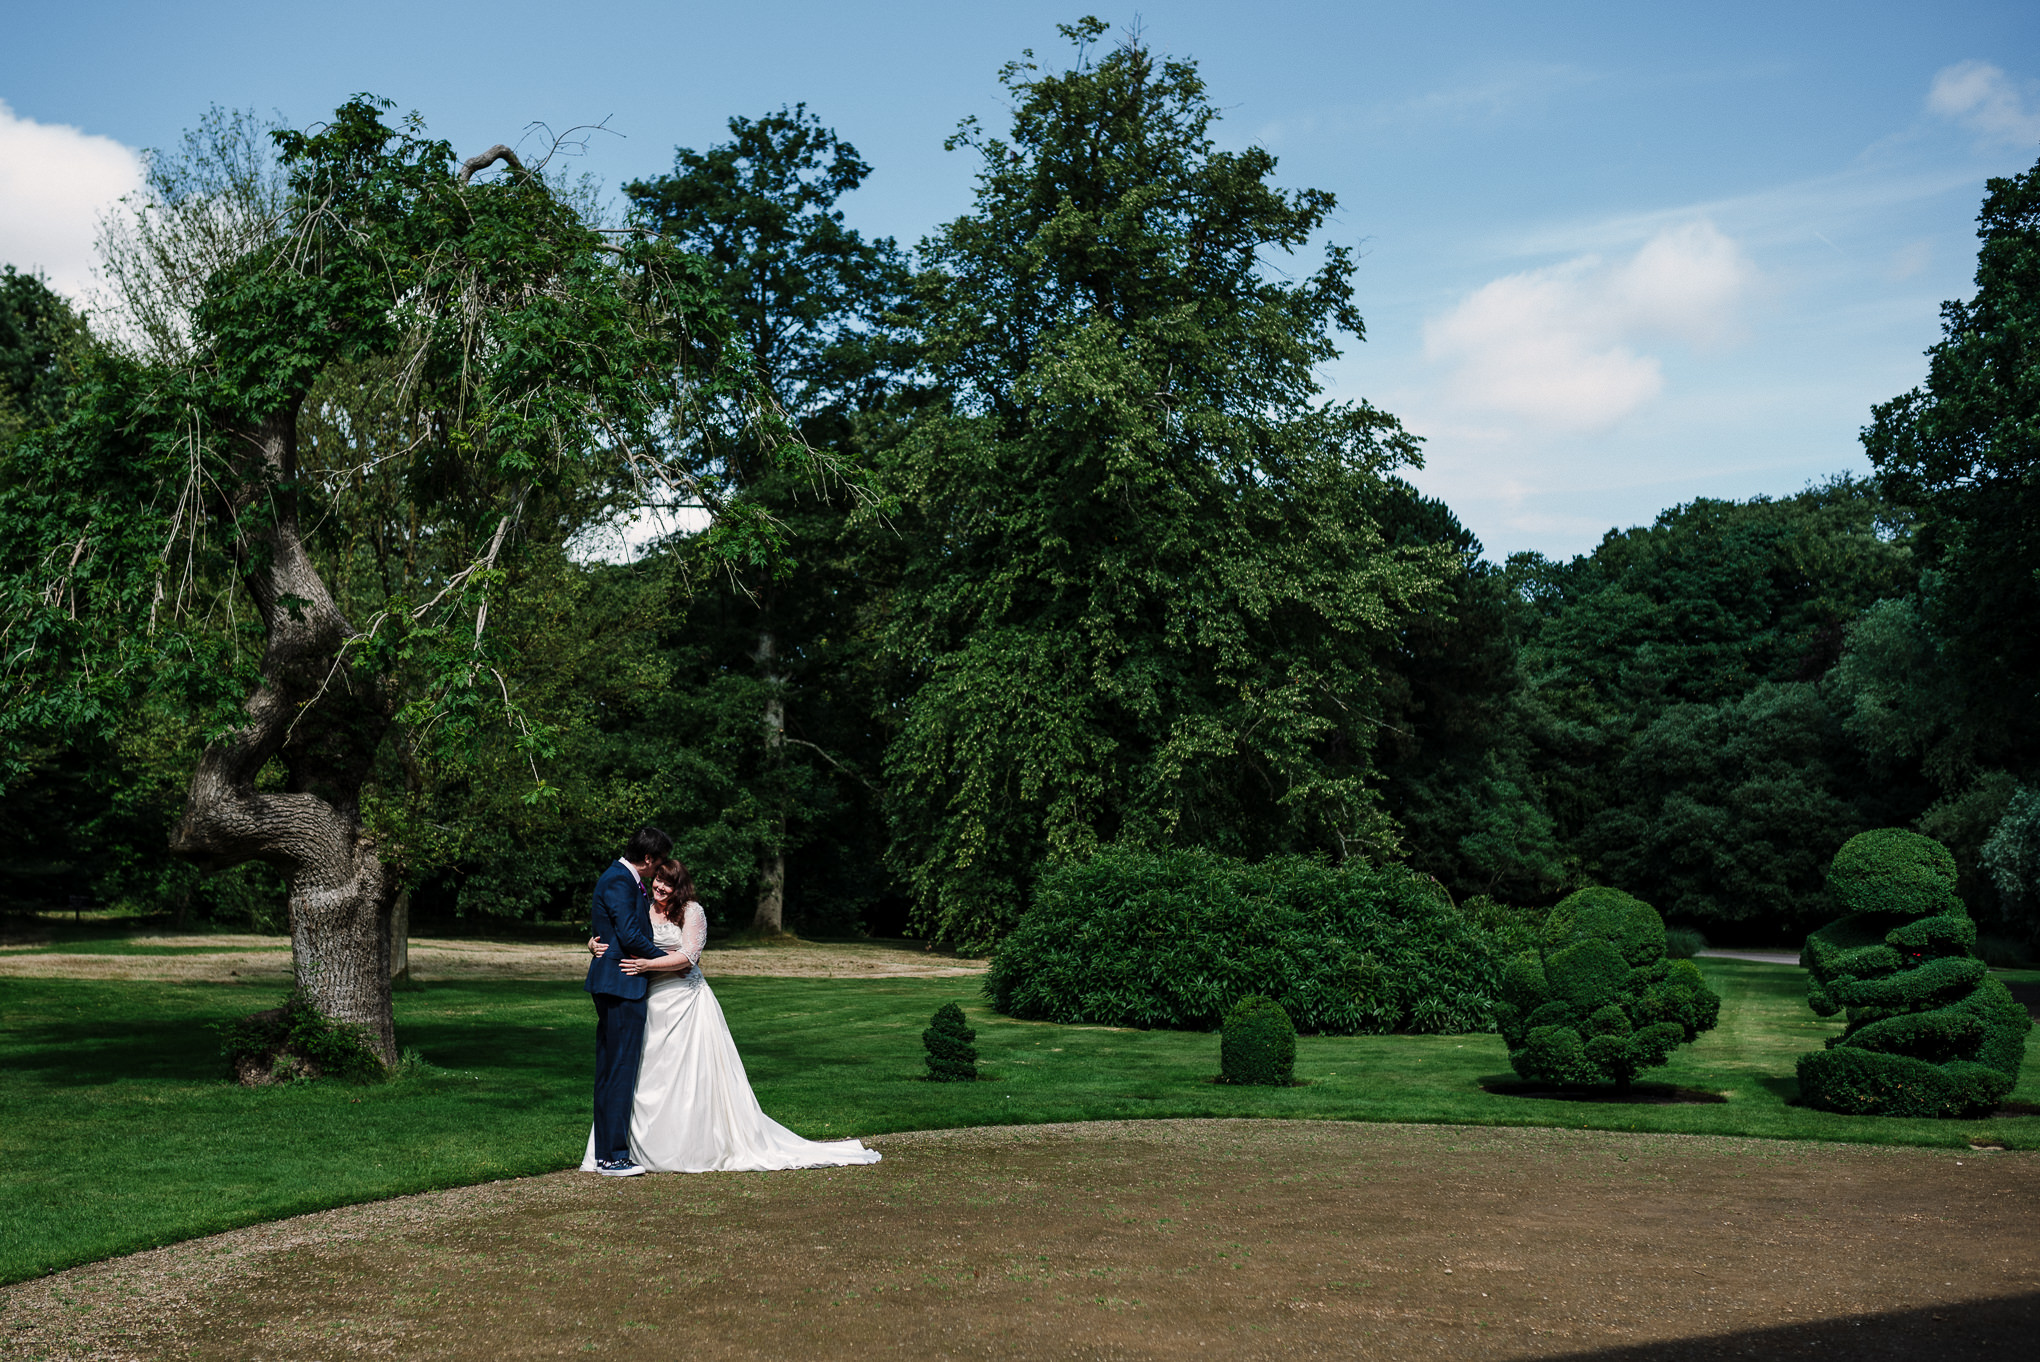 Landscape shot with bride and groom kissing.